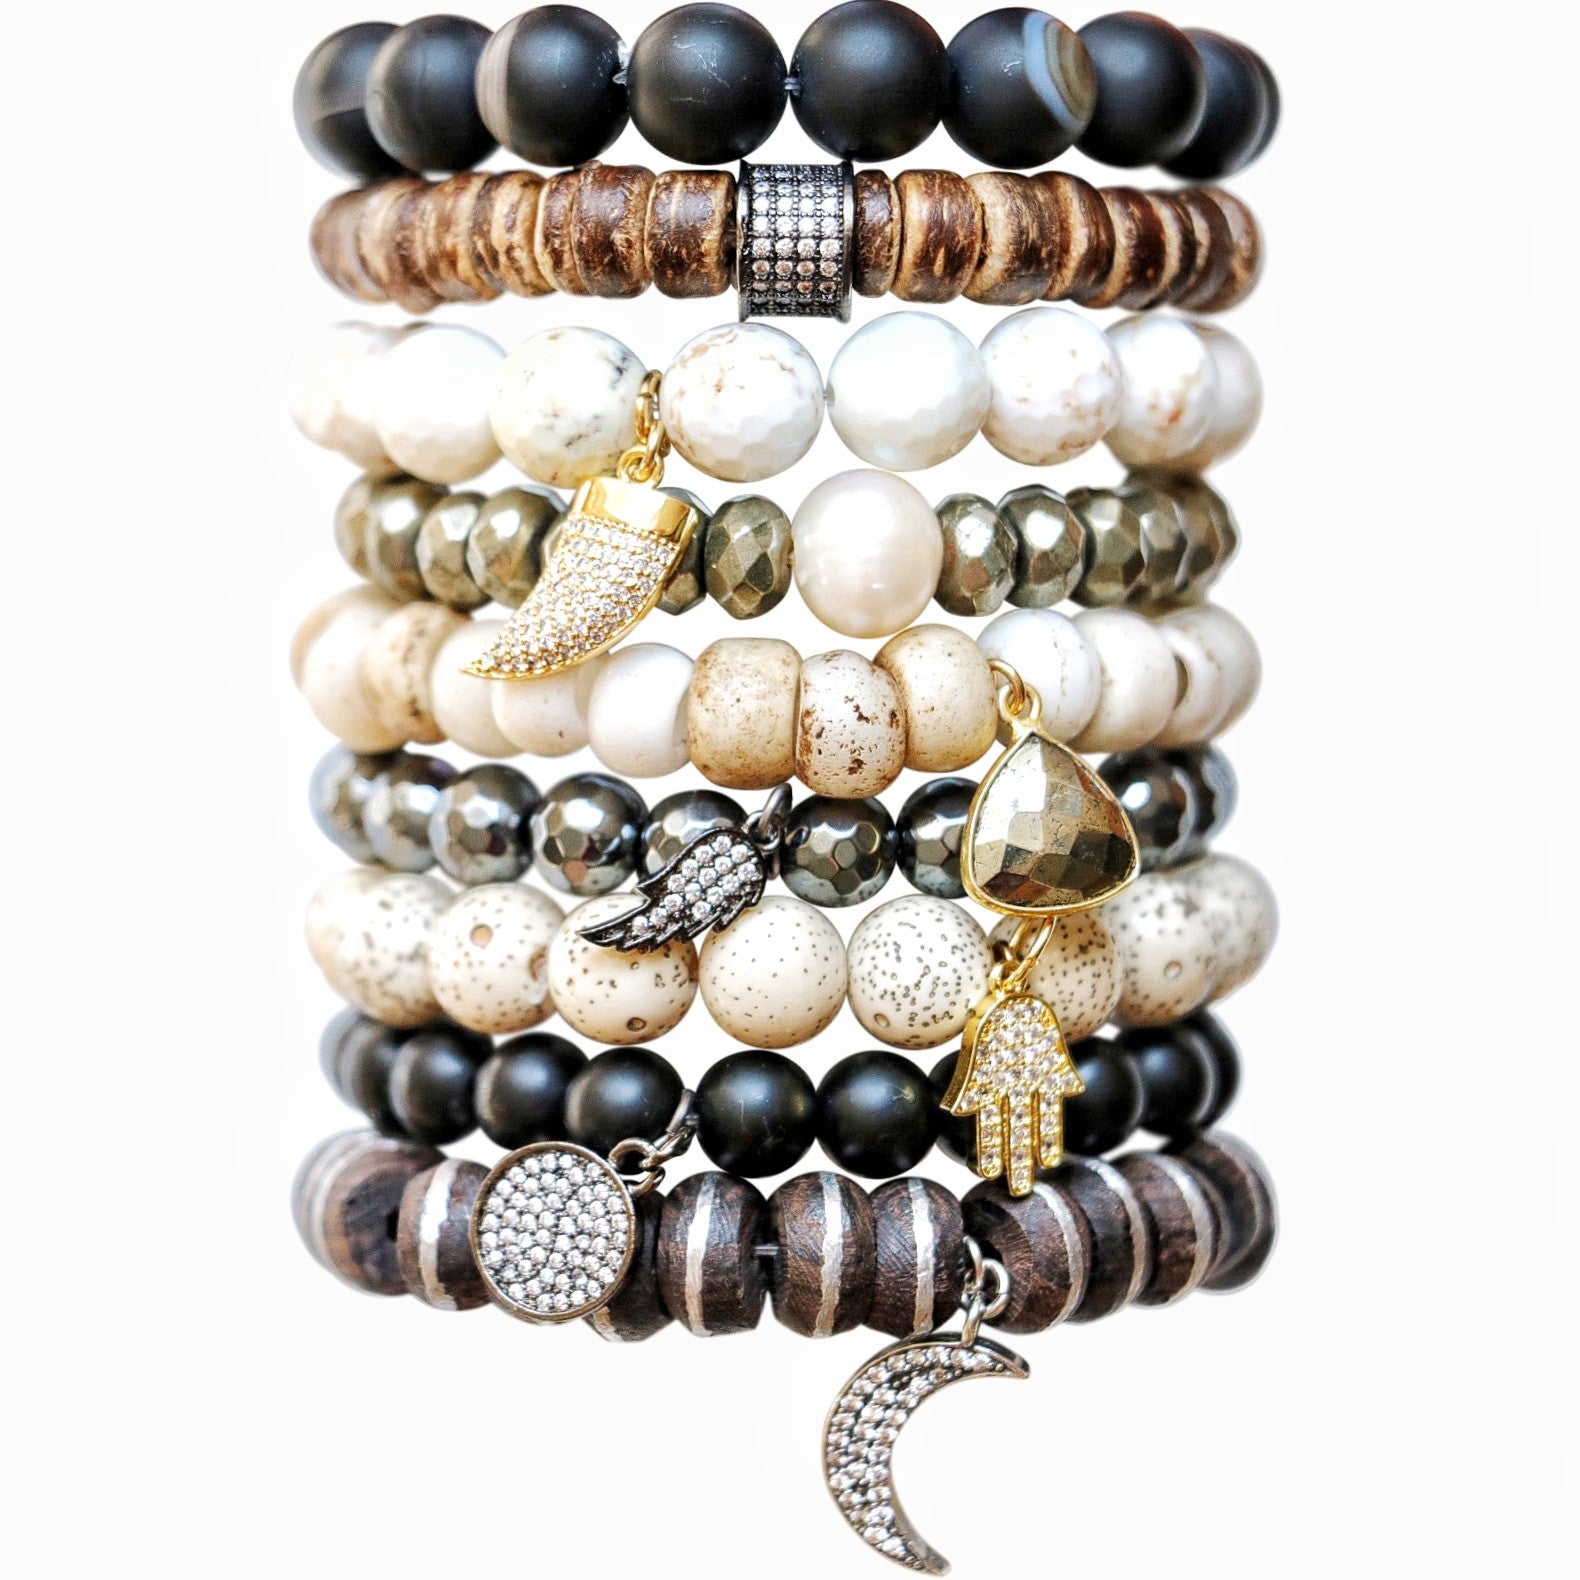 Molly Jane Designs Spotted White Agate Charm Bracelet